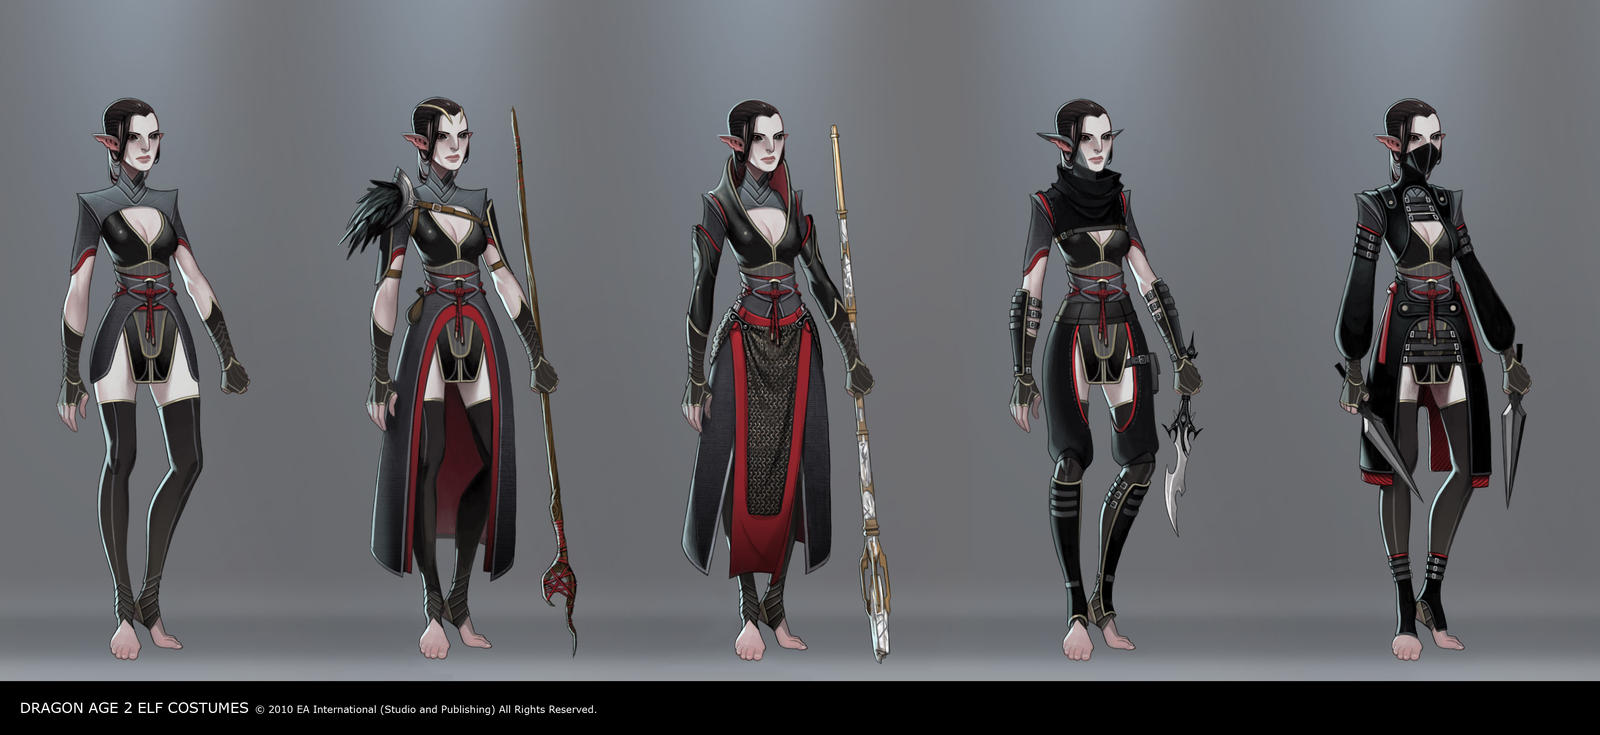 Fextralife View Topic What Clothing Armour Style Do You Hope For Dragon age audio codex codex entry: what clothing armour style do you hope